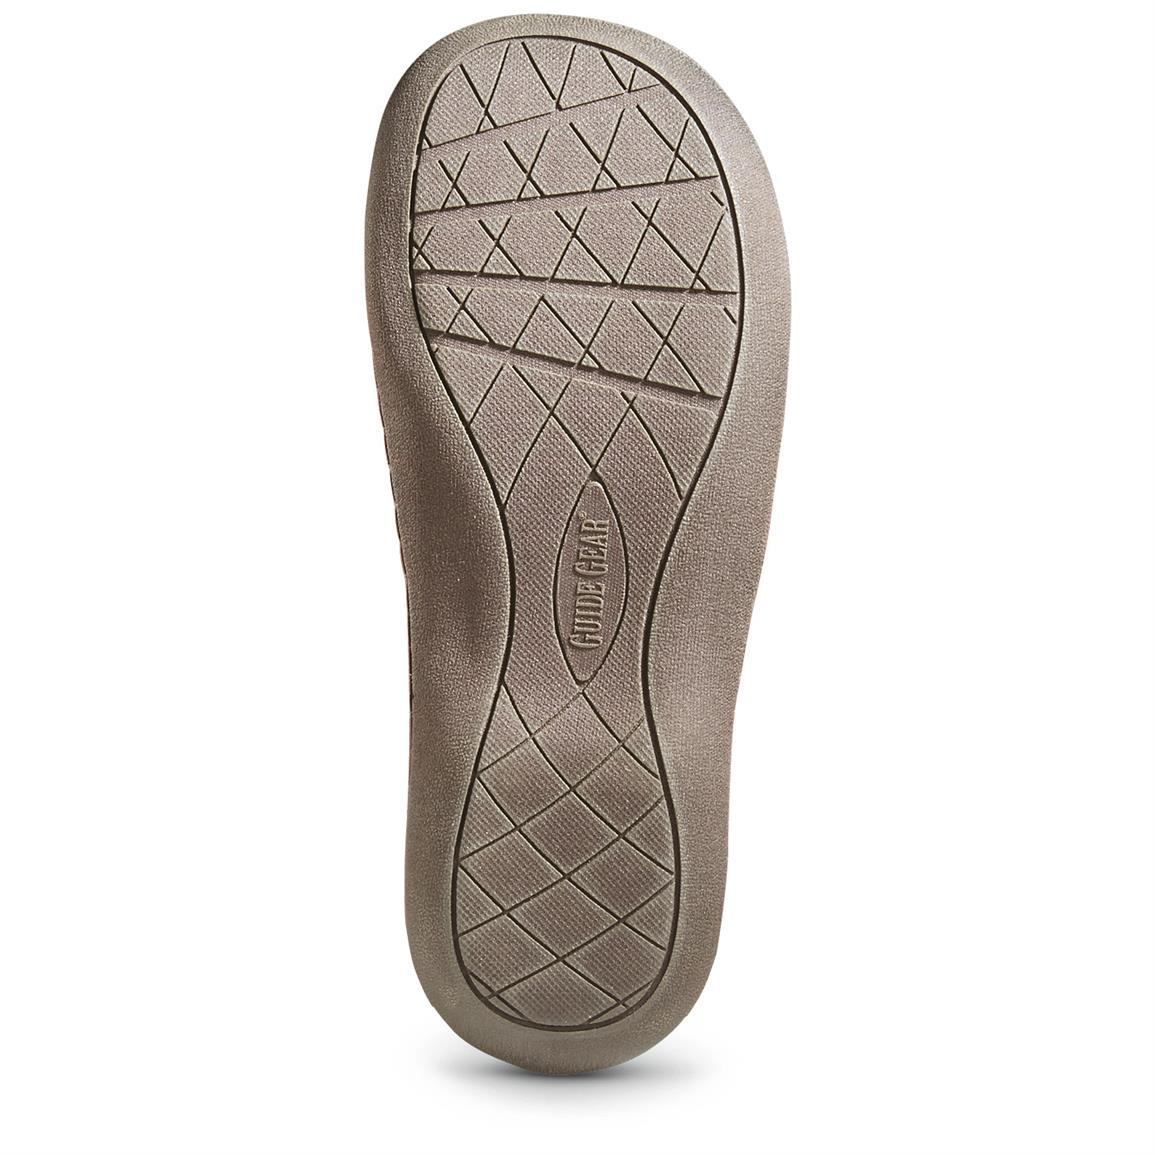 Hard outsole is indoor / outdoor friendly